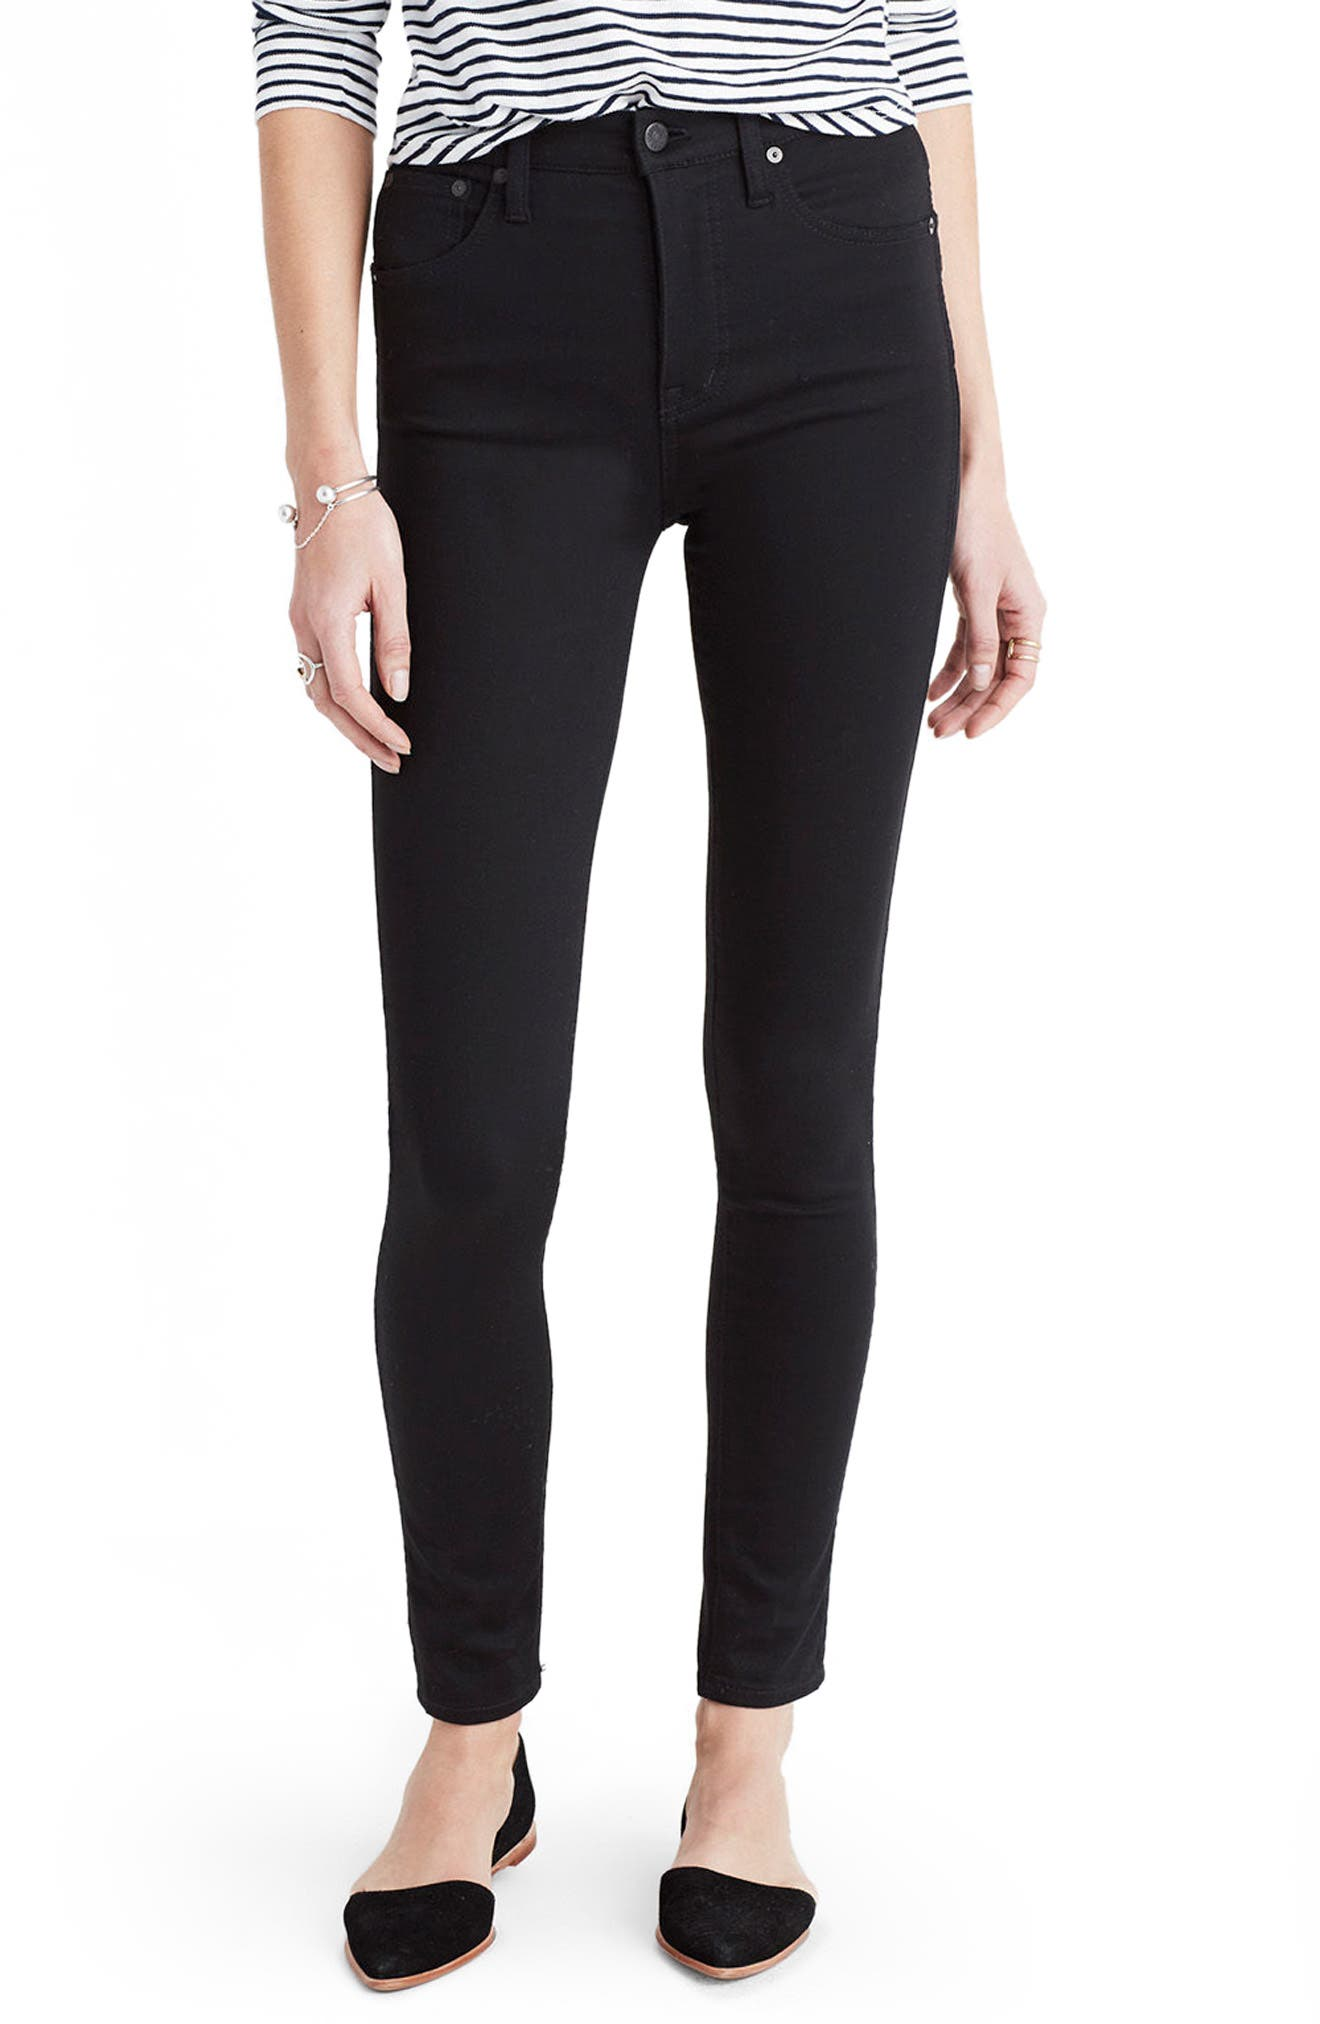 10-Inch High Waist Skinny Jeans,                         Main,                         color, Carbondale